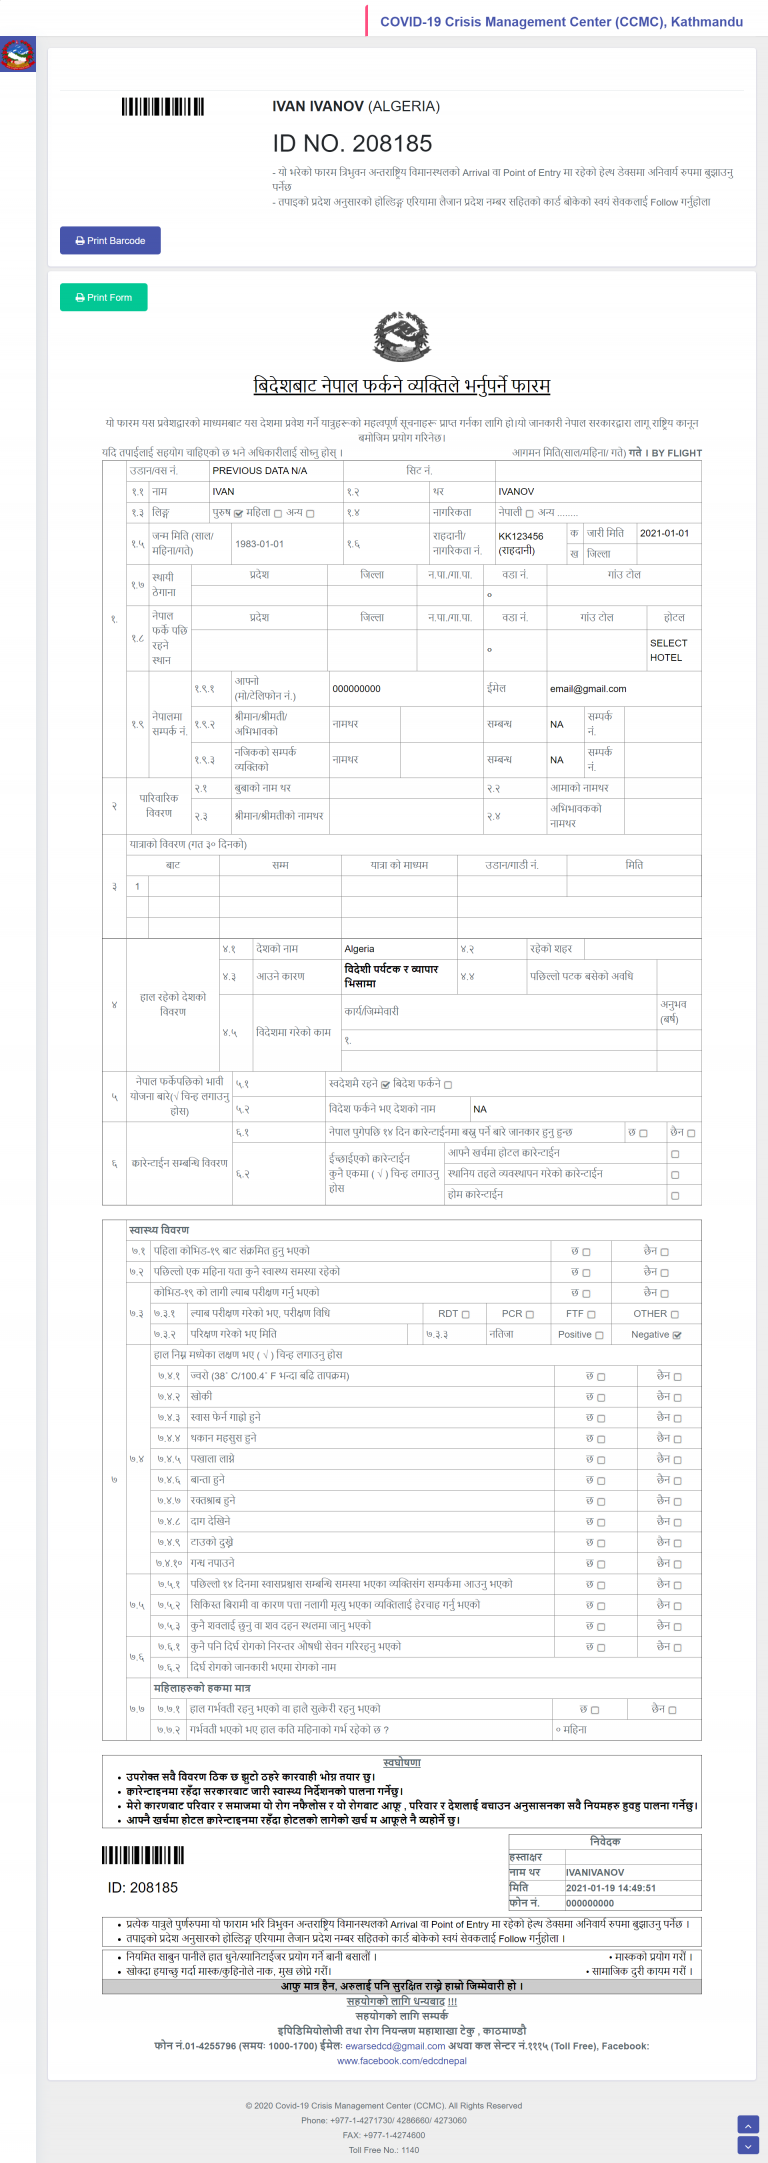 Example for ccmc form